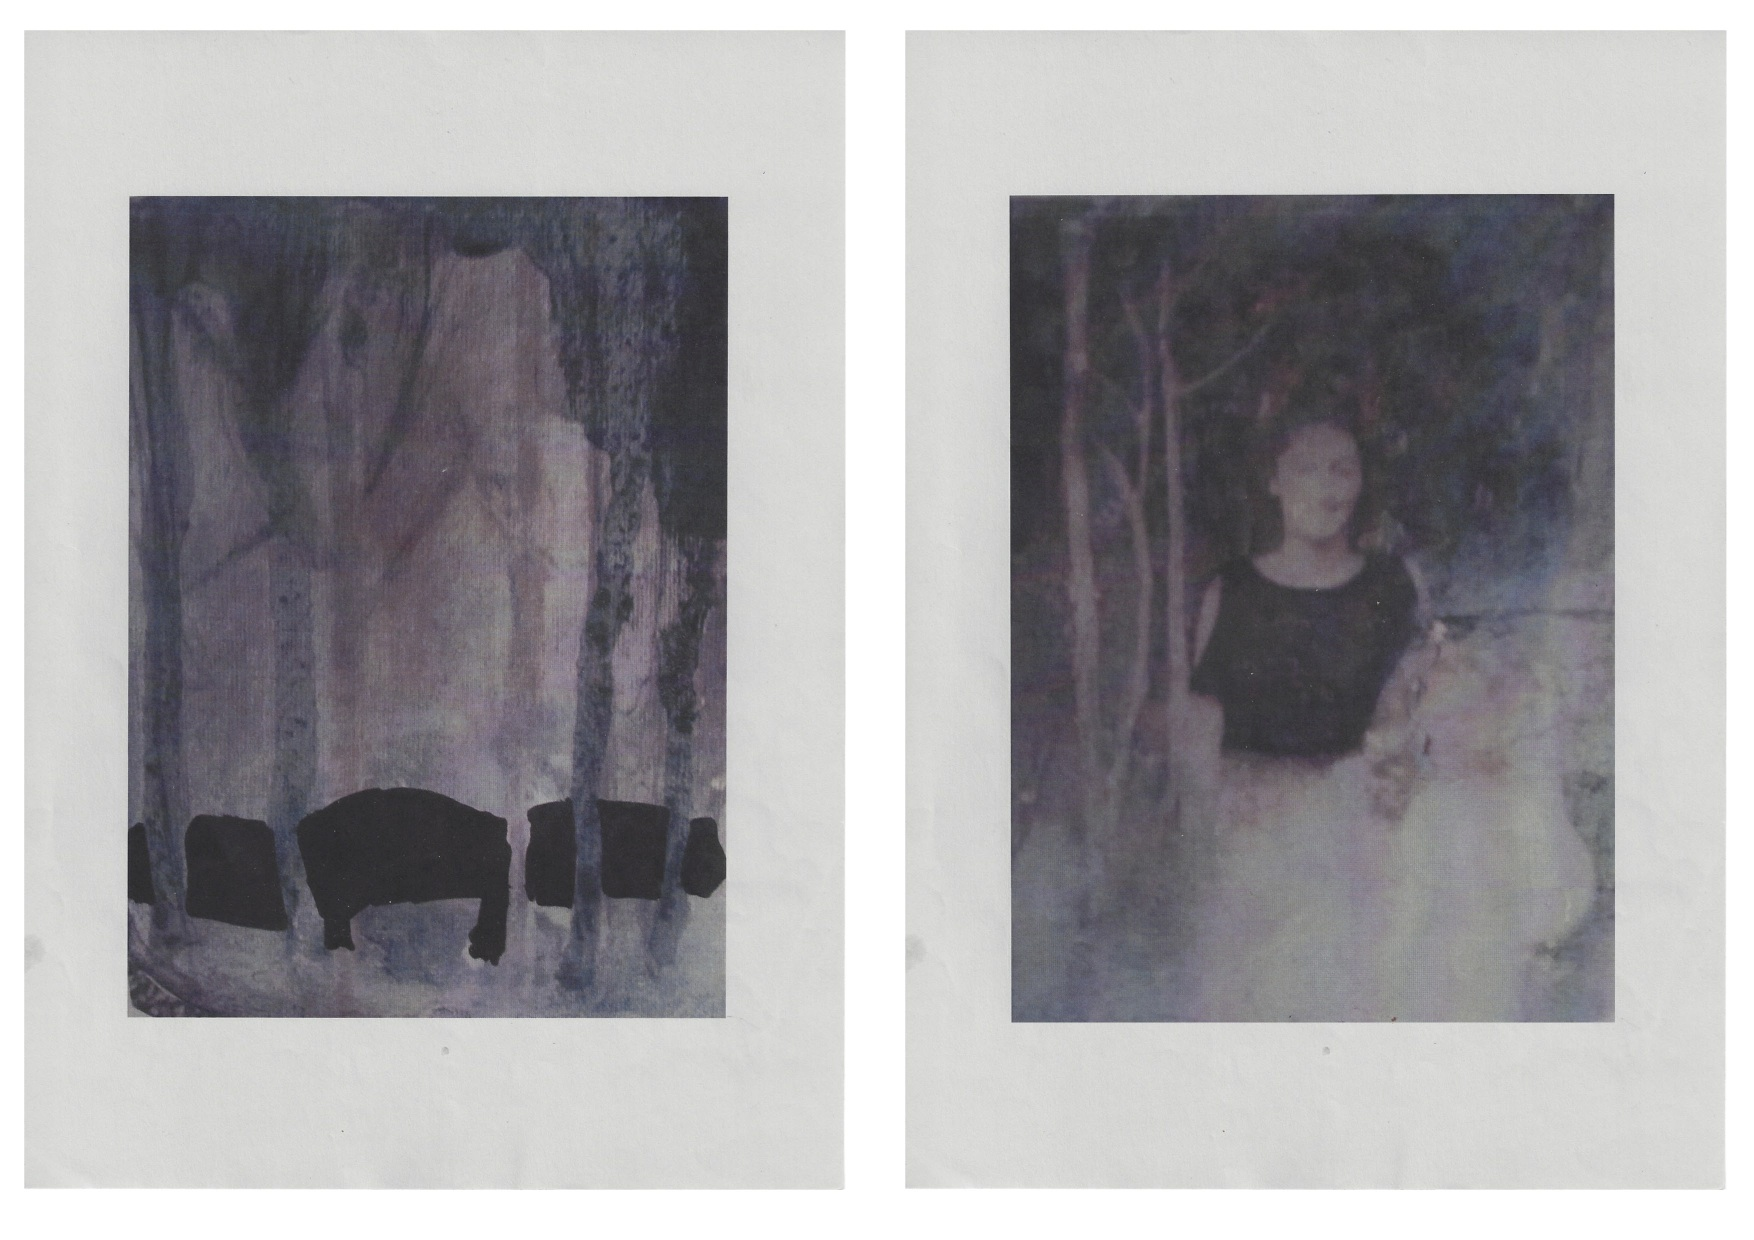 Hunt, 2012, laser print and mixed media on paper, 21 x 14.8 each